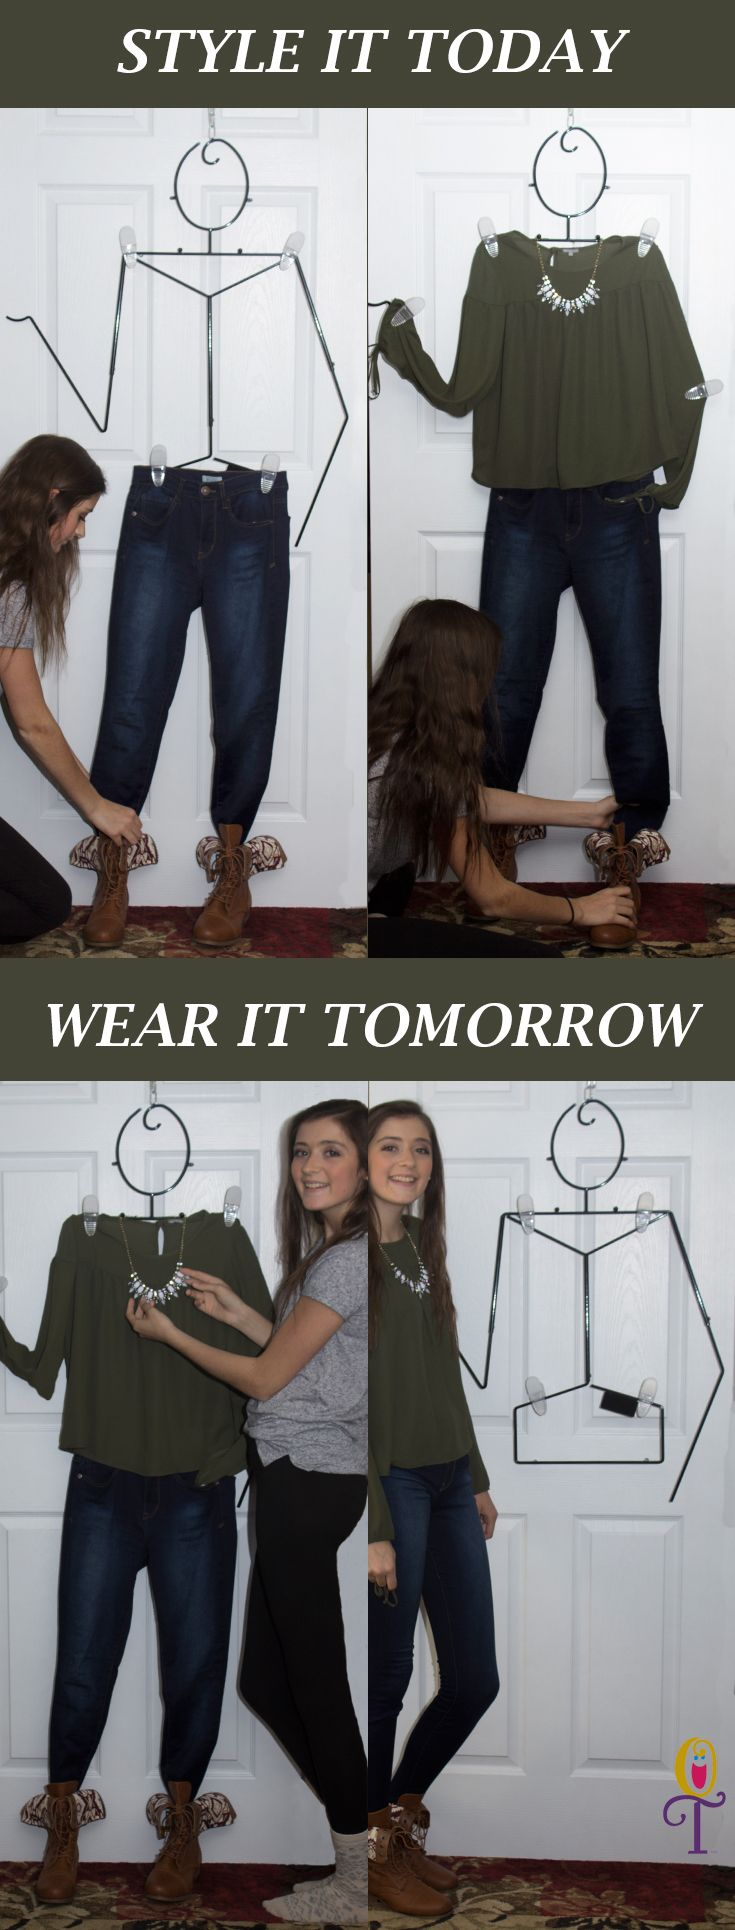 Style it today...wear it tomorrow!  Makes outfit planning fun and easy.  Plan your outfits for school.  girls bedroom ideas, gifts for girls